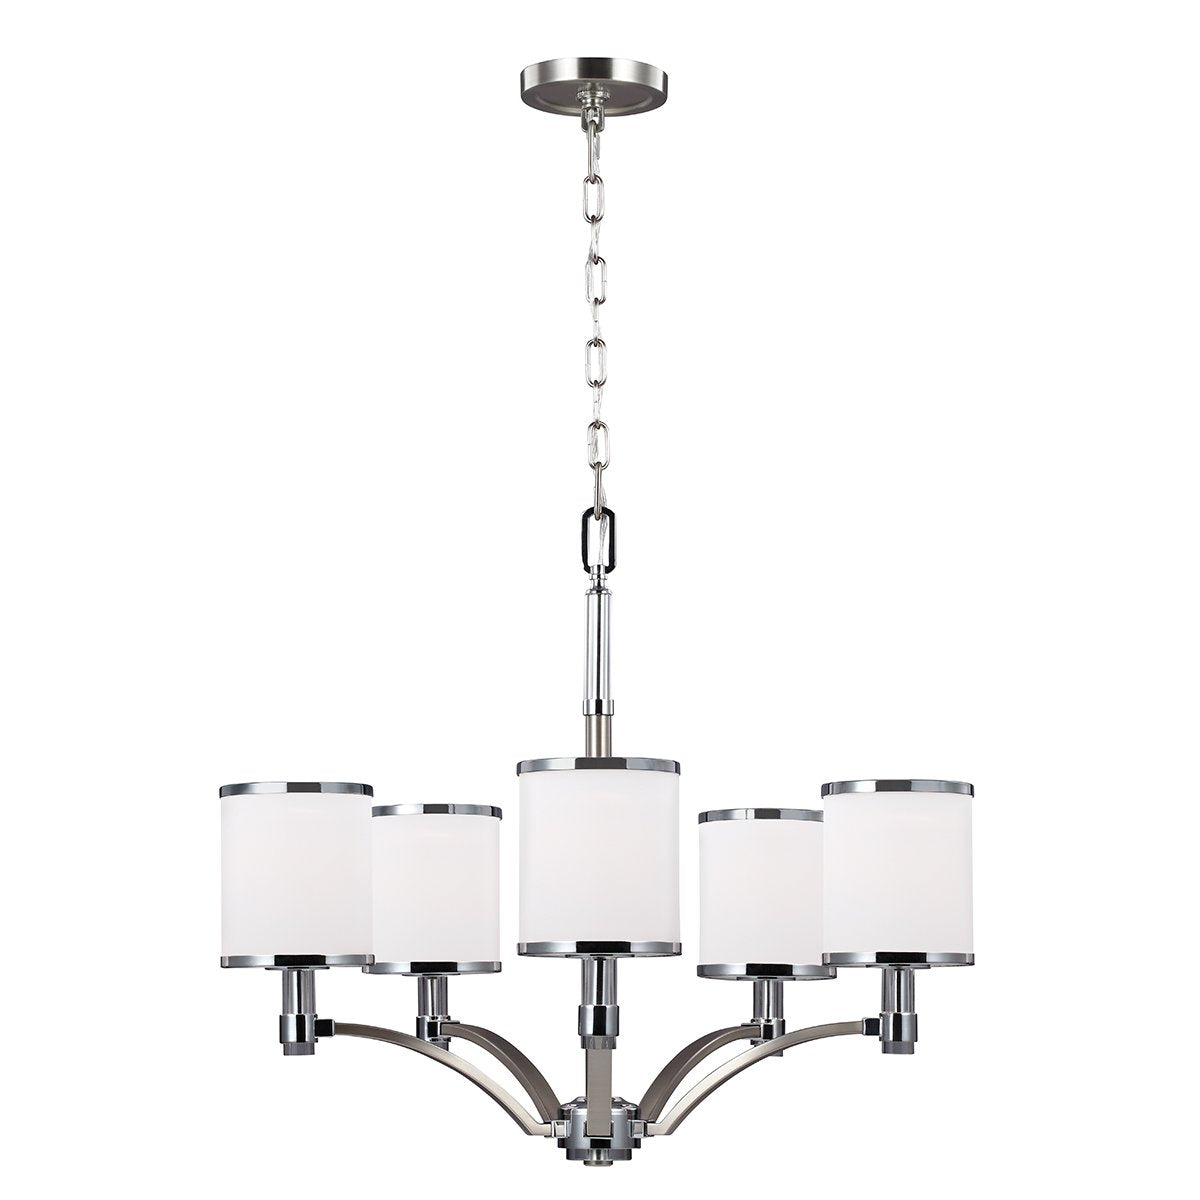 Small Satin Nickel/Chrome Chandelier